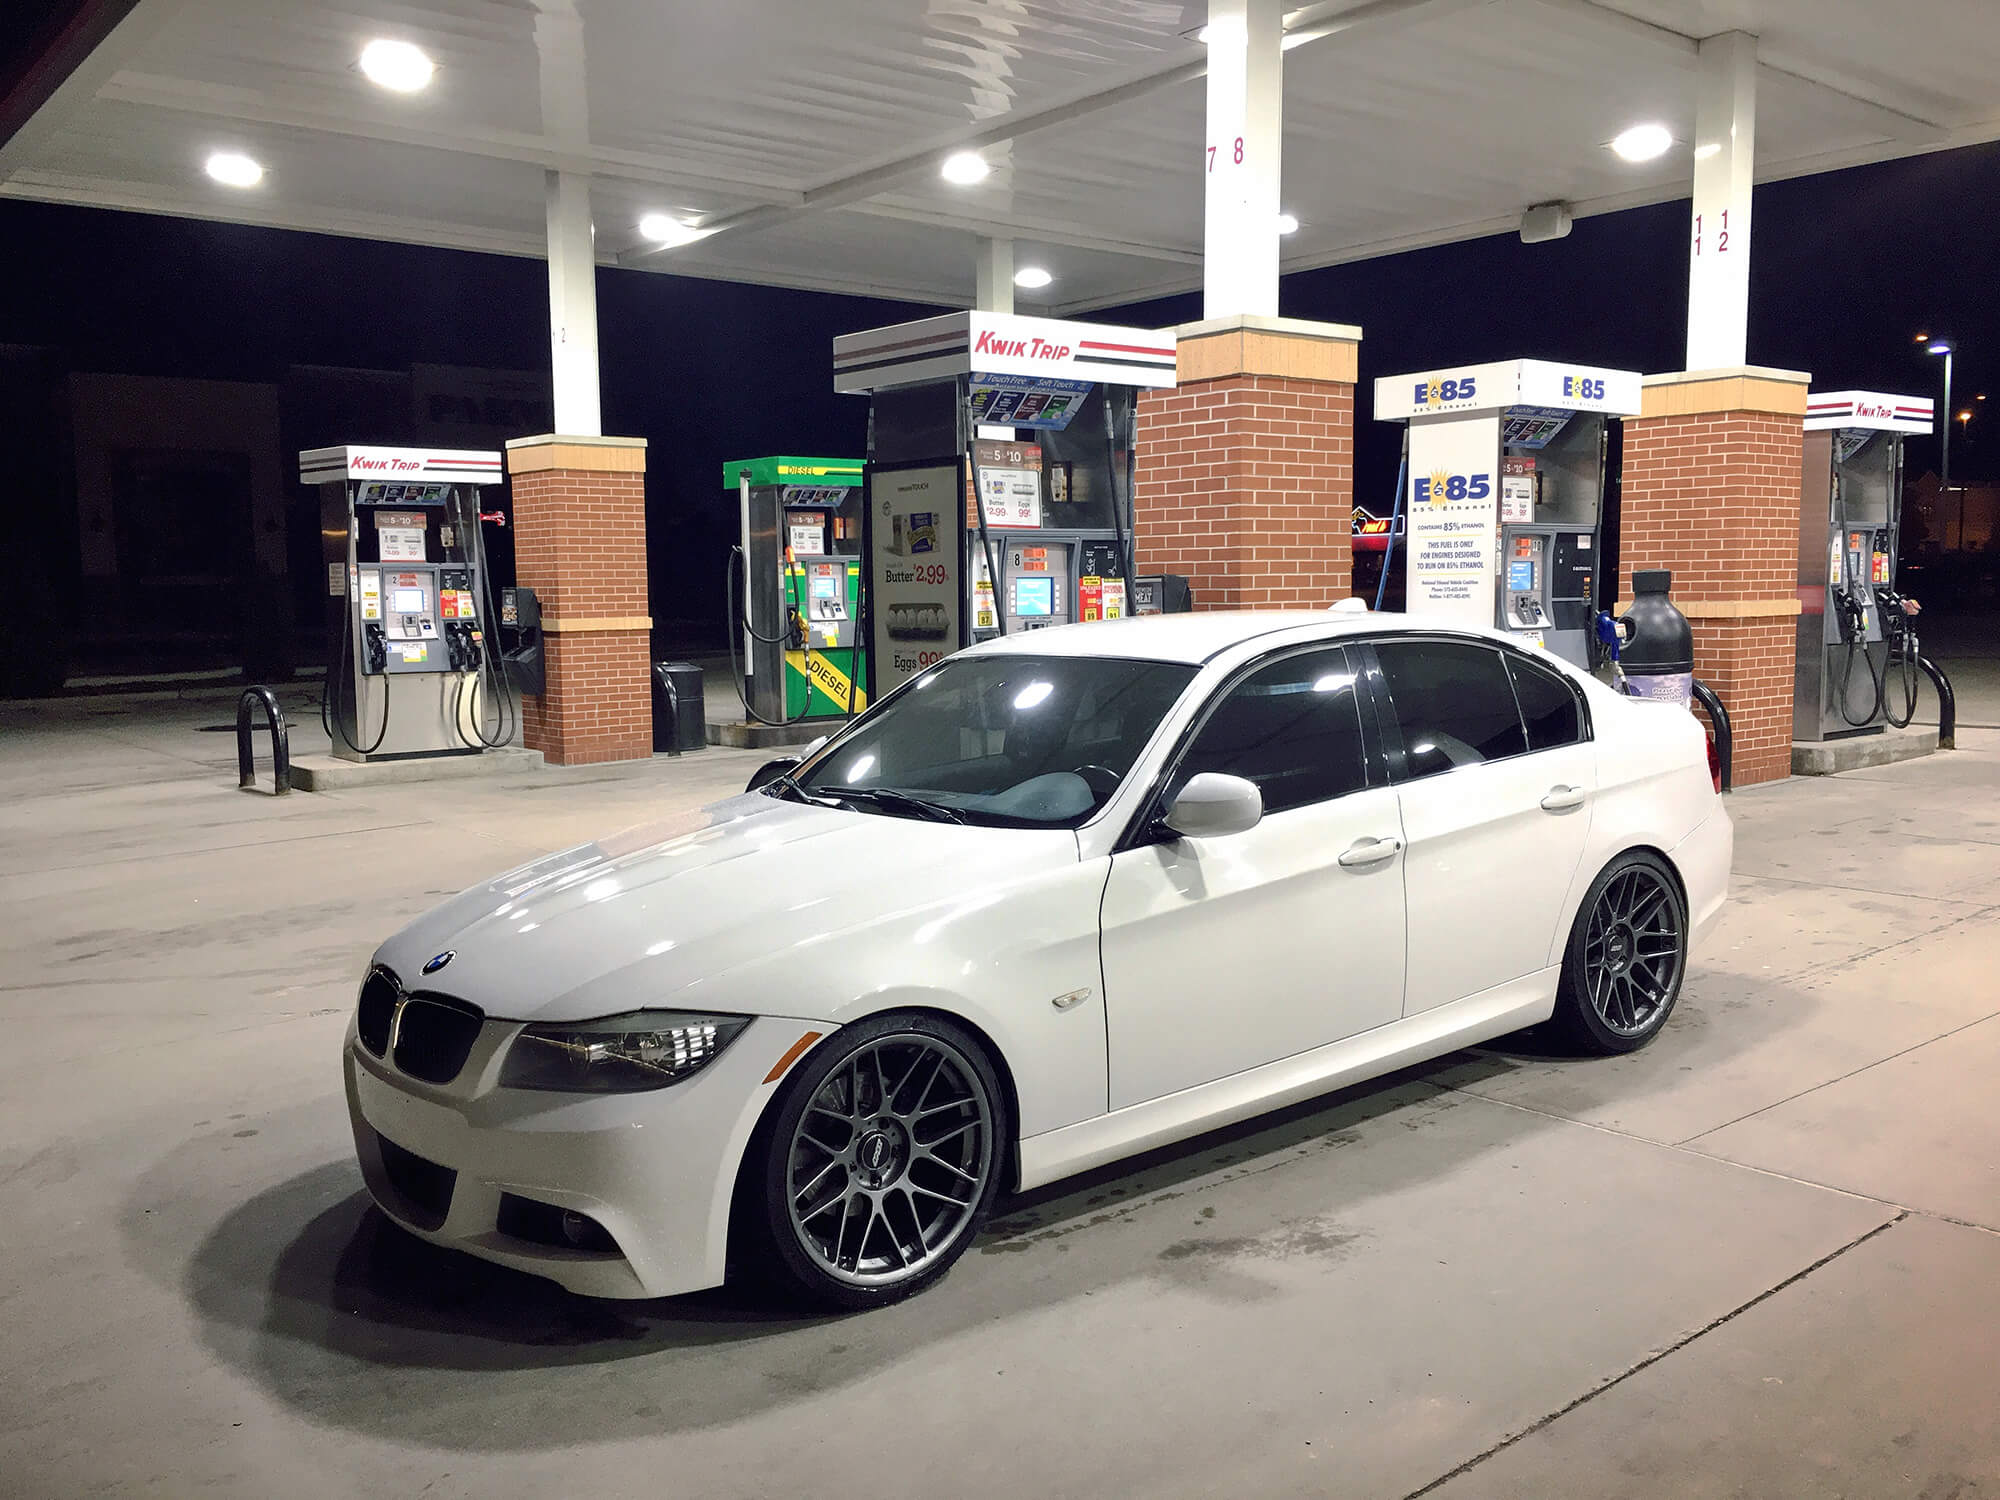 White 2010 BMW 328i (M-Sport) filling up at the gas station